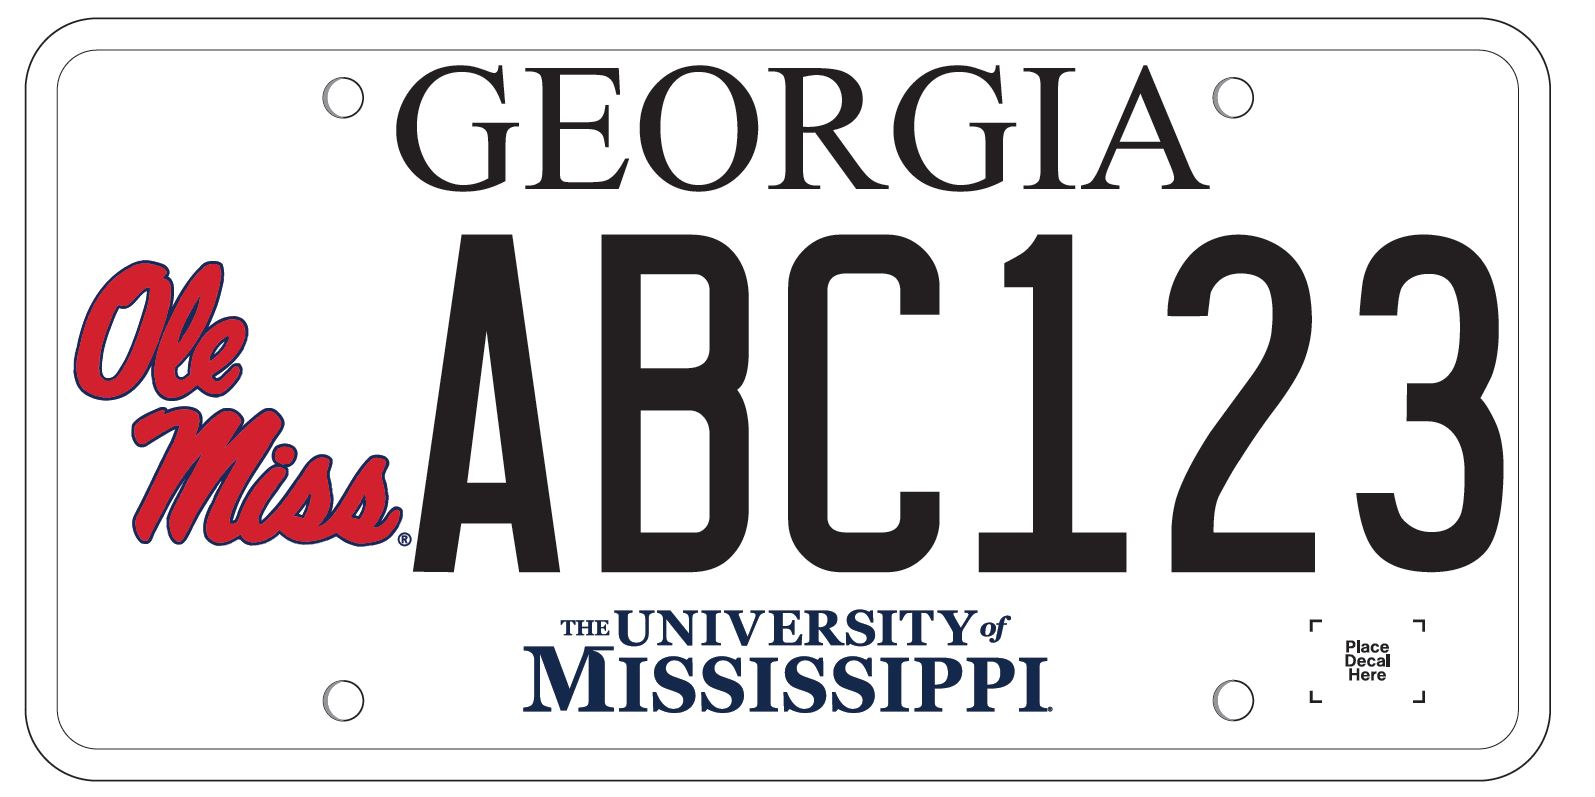 Georgia Car Tag Cost